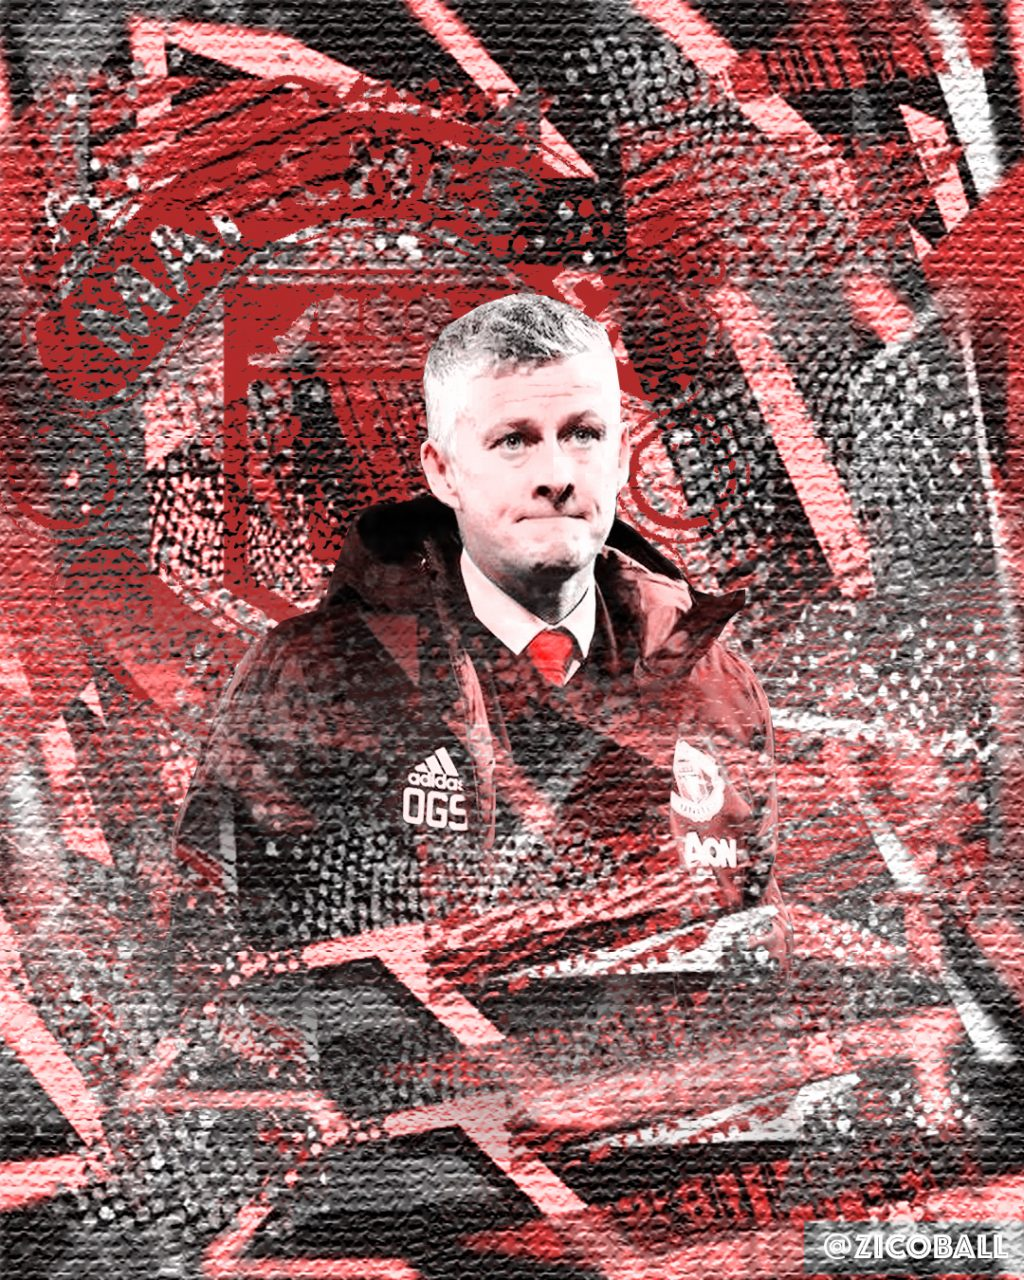 Ole Gunnar Solskjaer and a United logo amongst an abstract background.